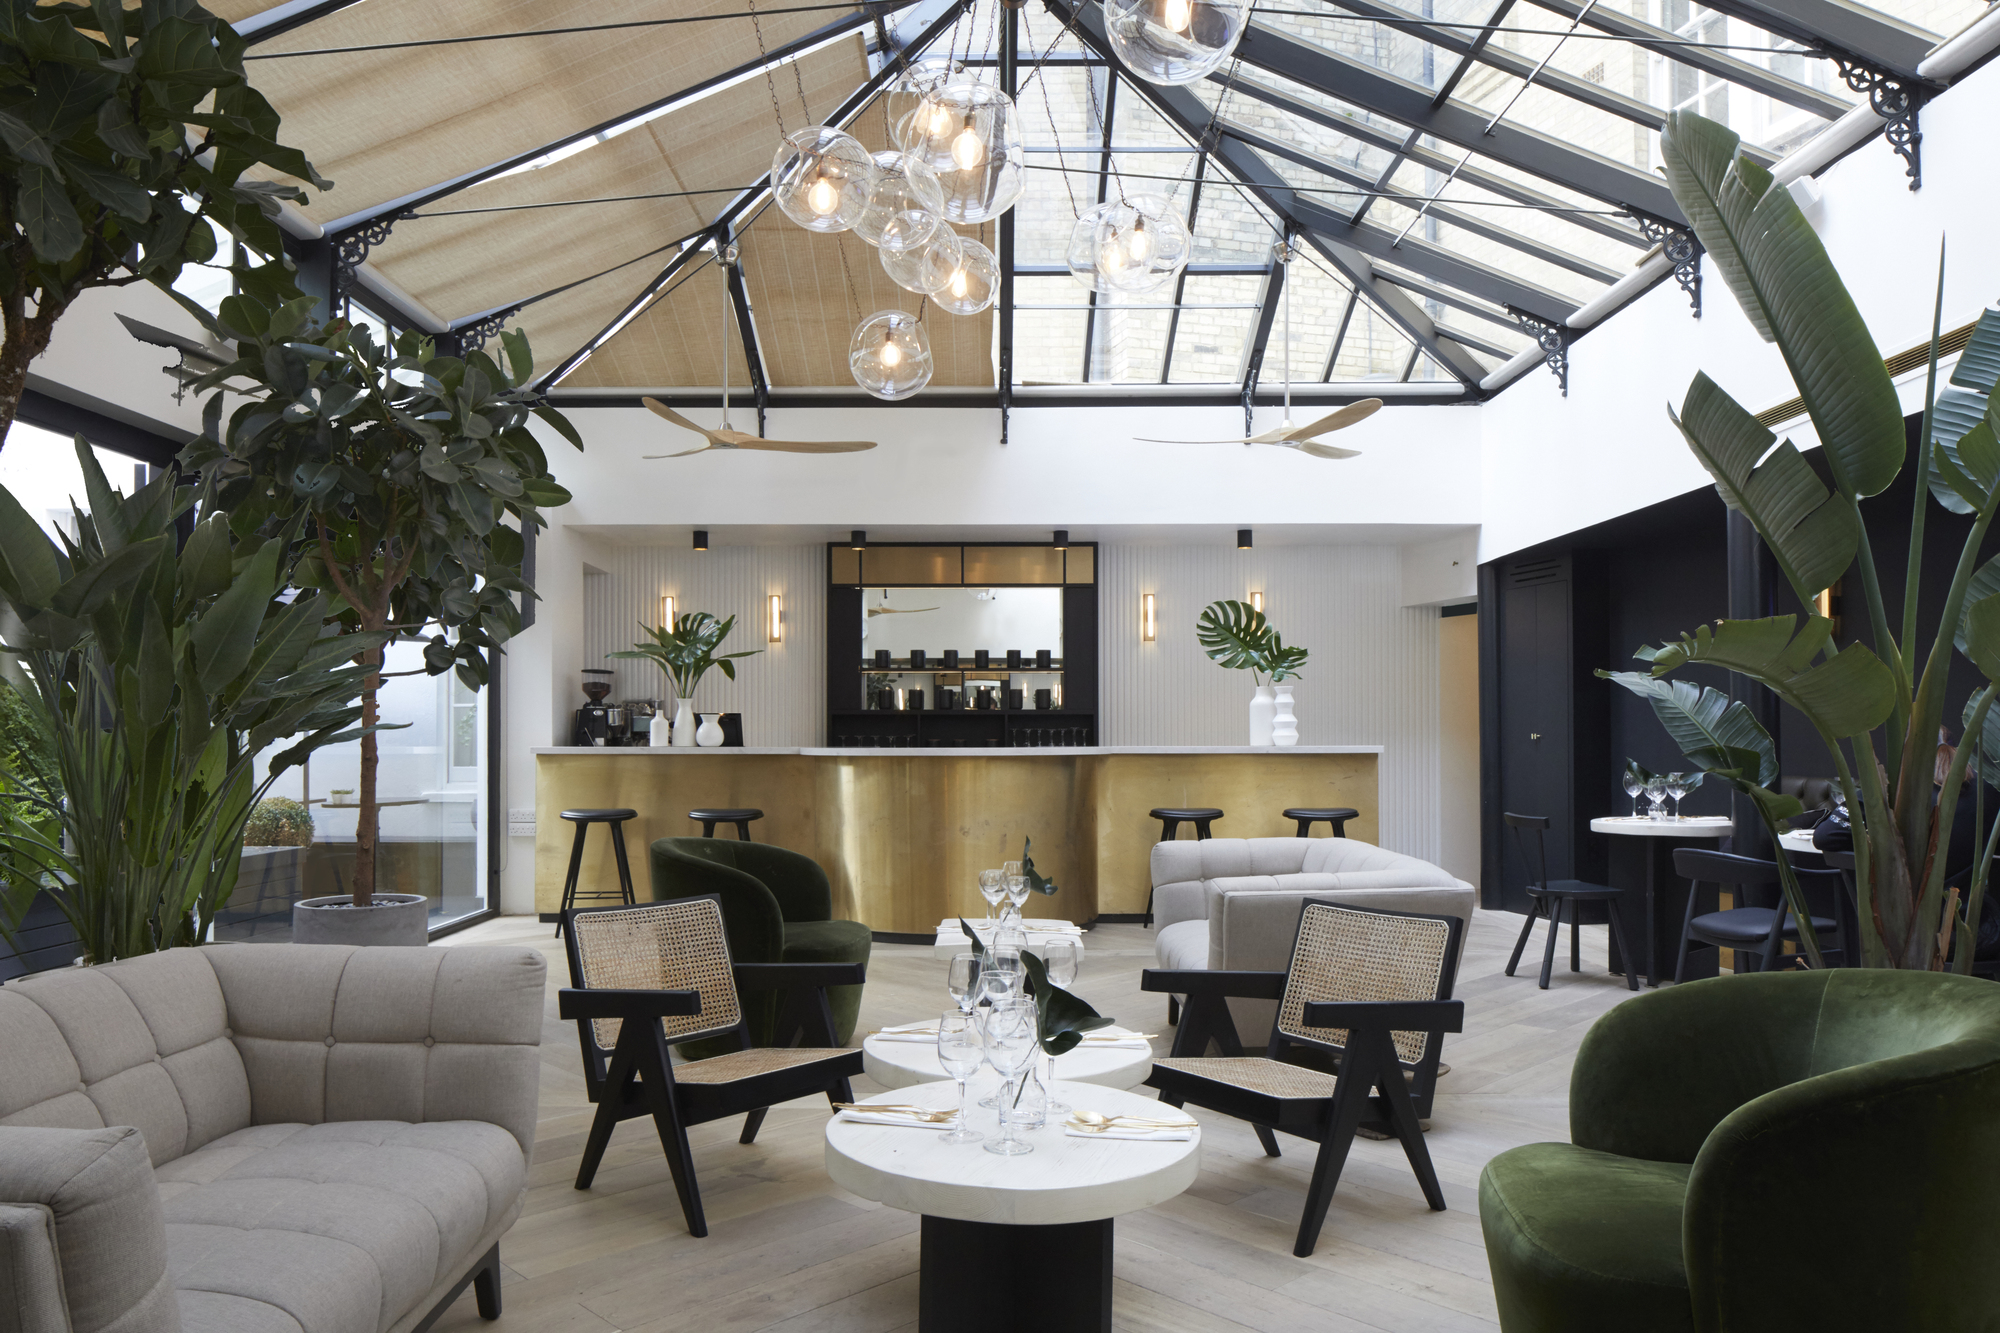 Mychelsea boutique hotel design haus liberty archdaily for Design hotel quartier 65